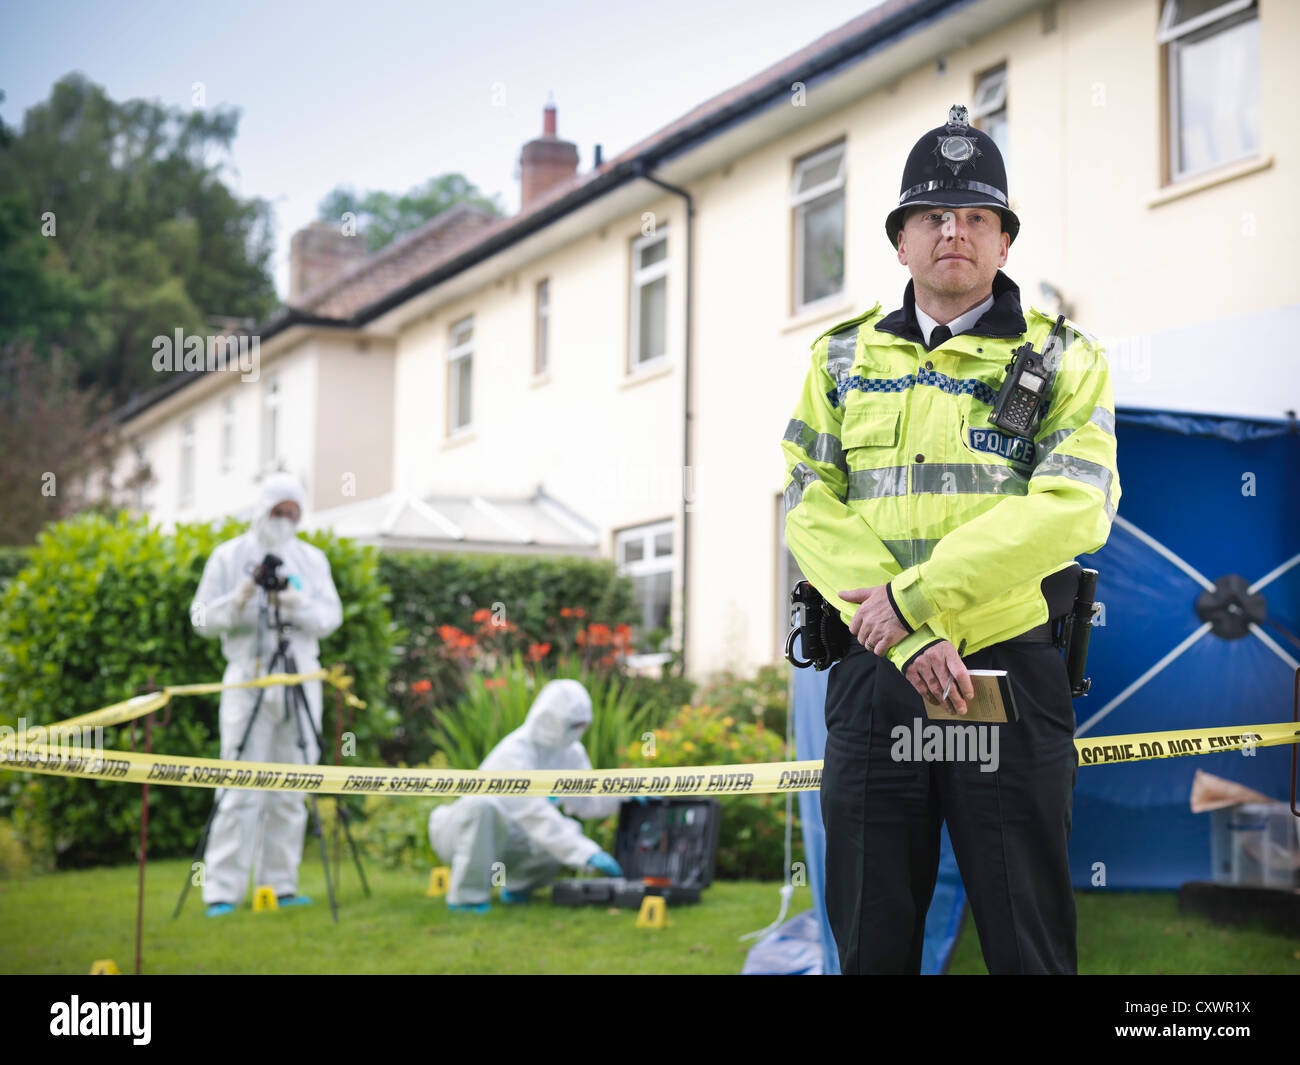 Policeman guarding forensic crime scene - Stock Image